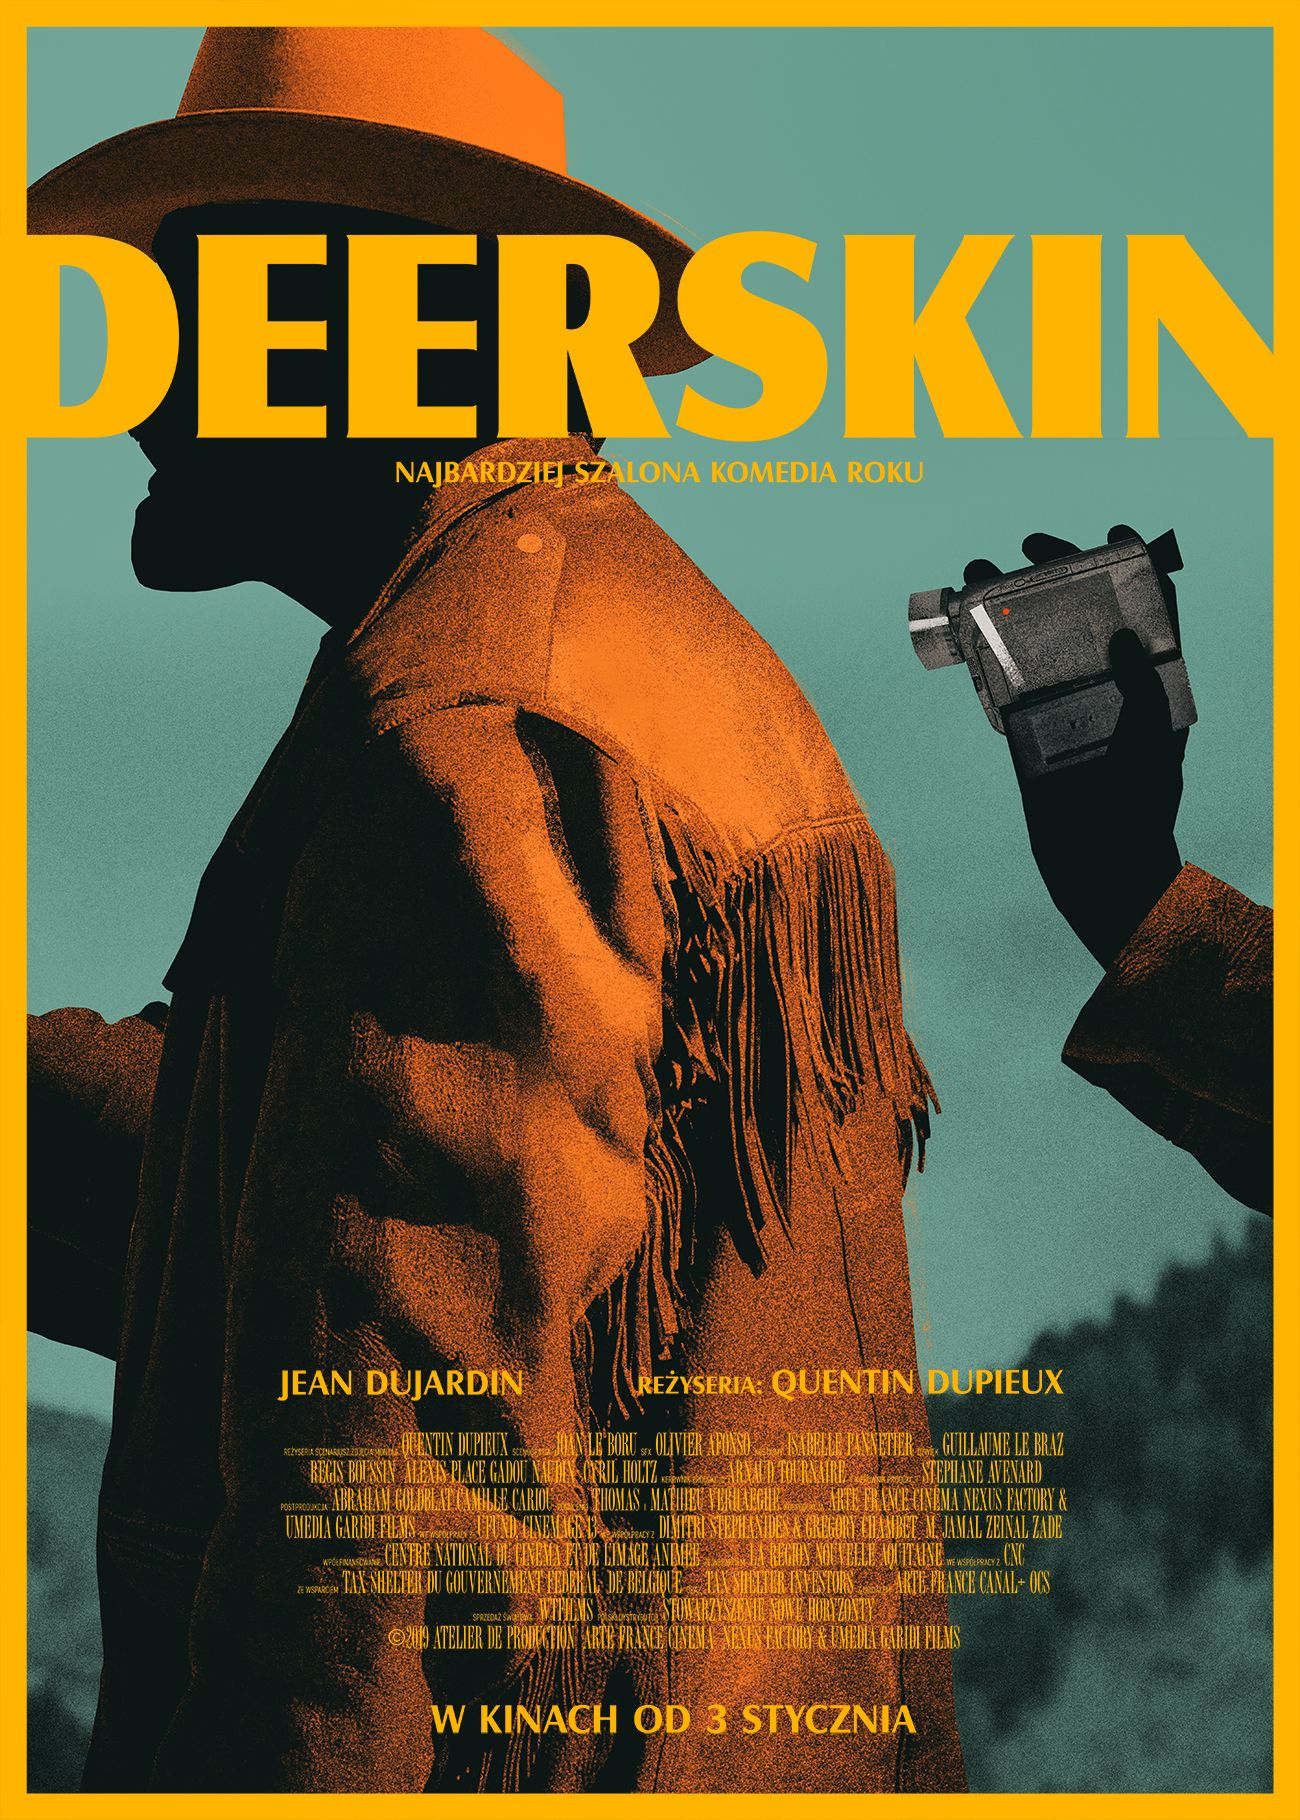 Le Daim Streaming Vf : streaming, Deerskin, Skin,, Movie, Posters, Minimalist,